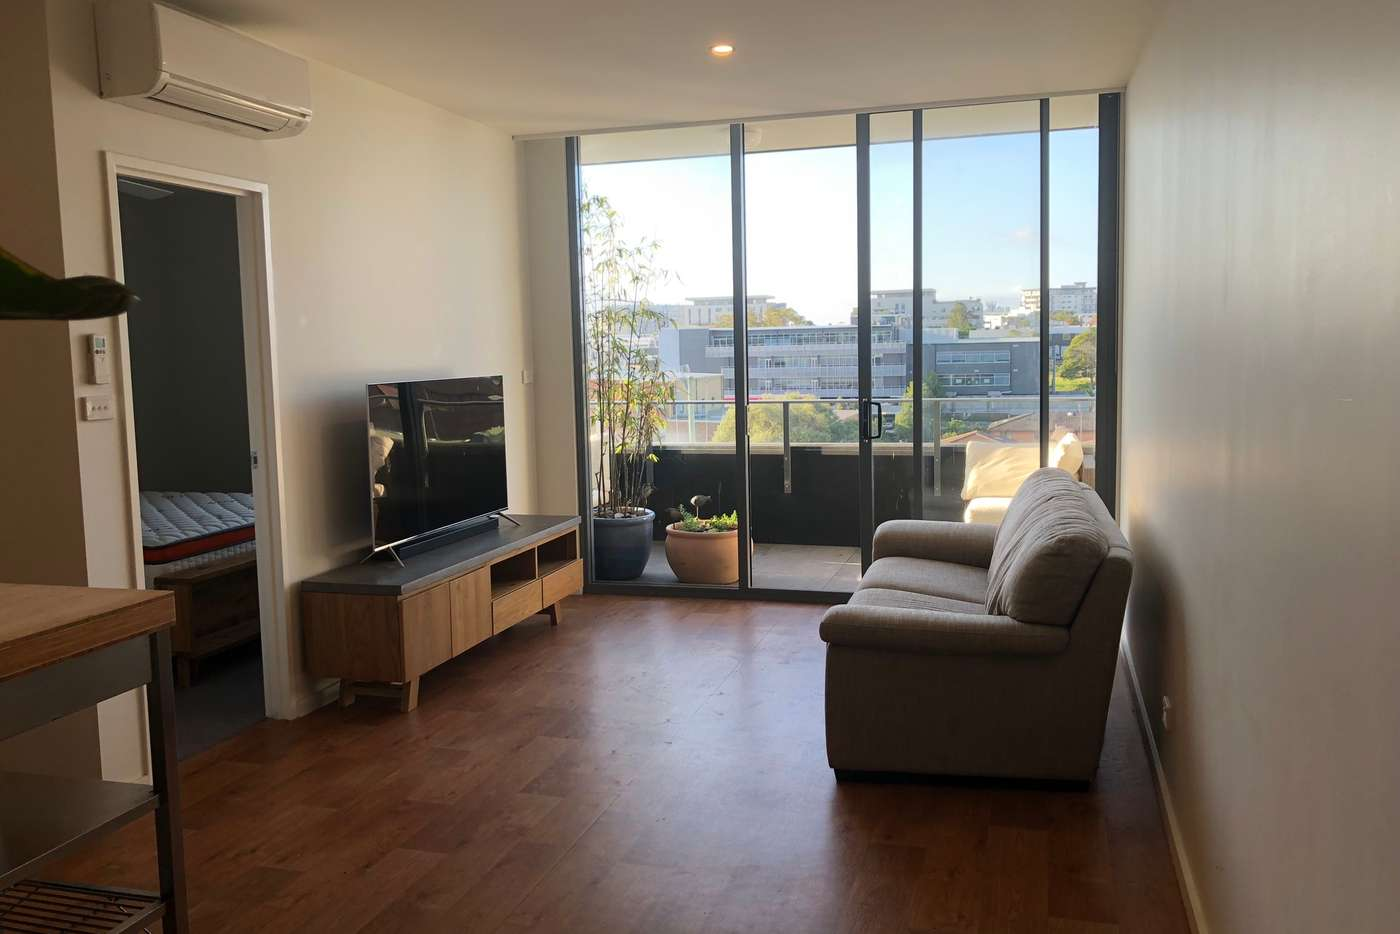 Main view of Homely apartment listing, 603/6-8 Charles Street, Charlestown NSW 2290